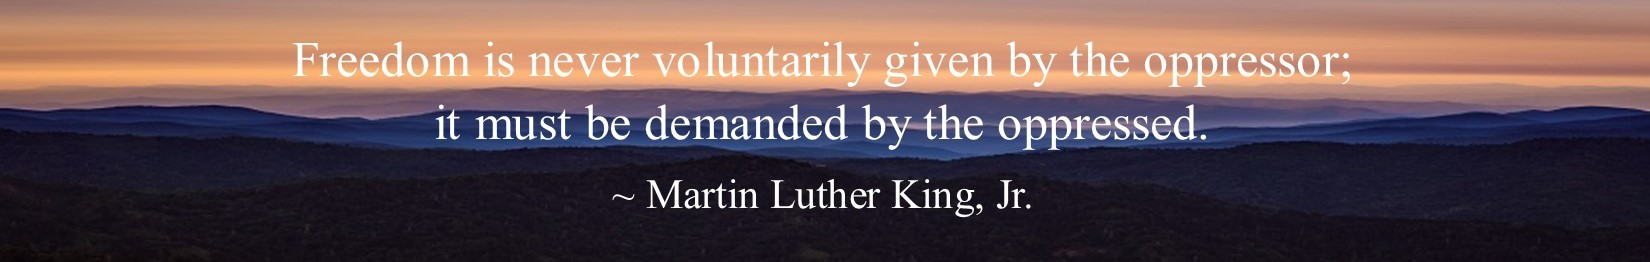 Freedom is never voluntarily given by the oppressor; it must be demanded by the oppressed. Martin Luther King, Jr.